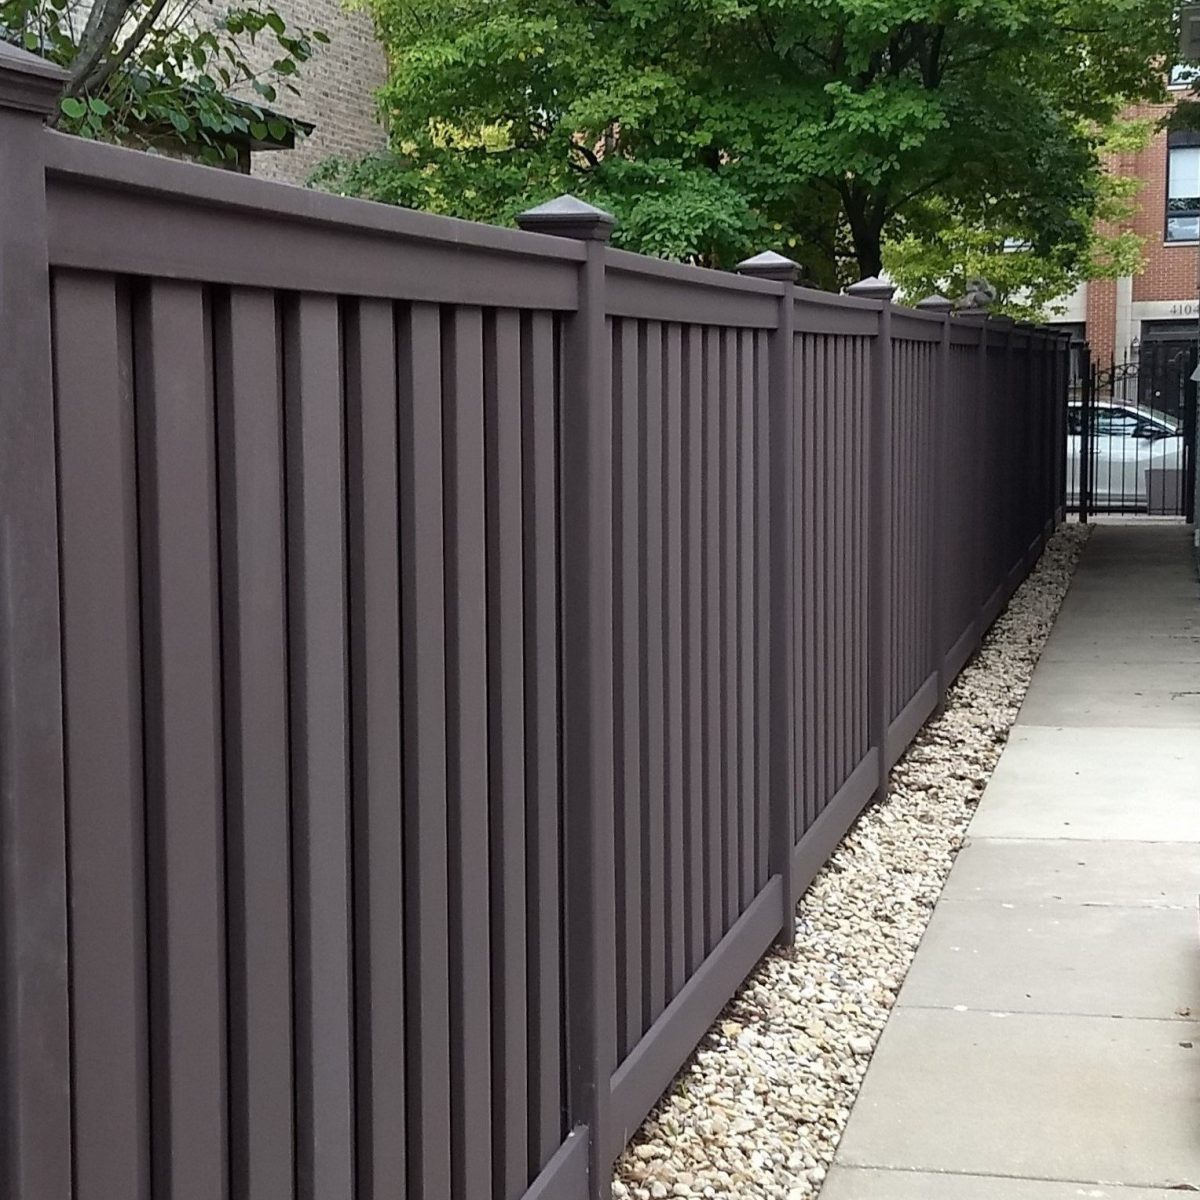 A Woodland Brown Trex fence in downtown Chicago